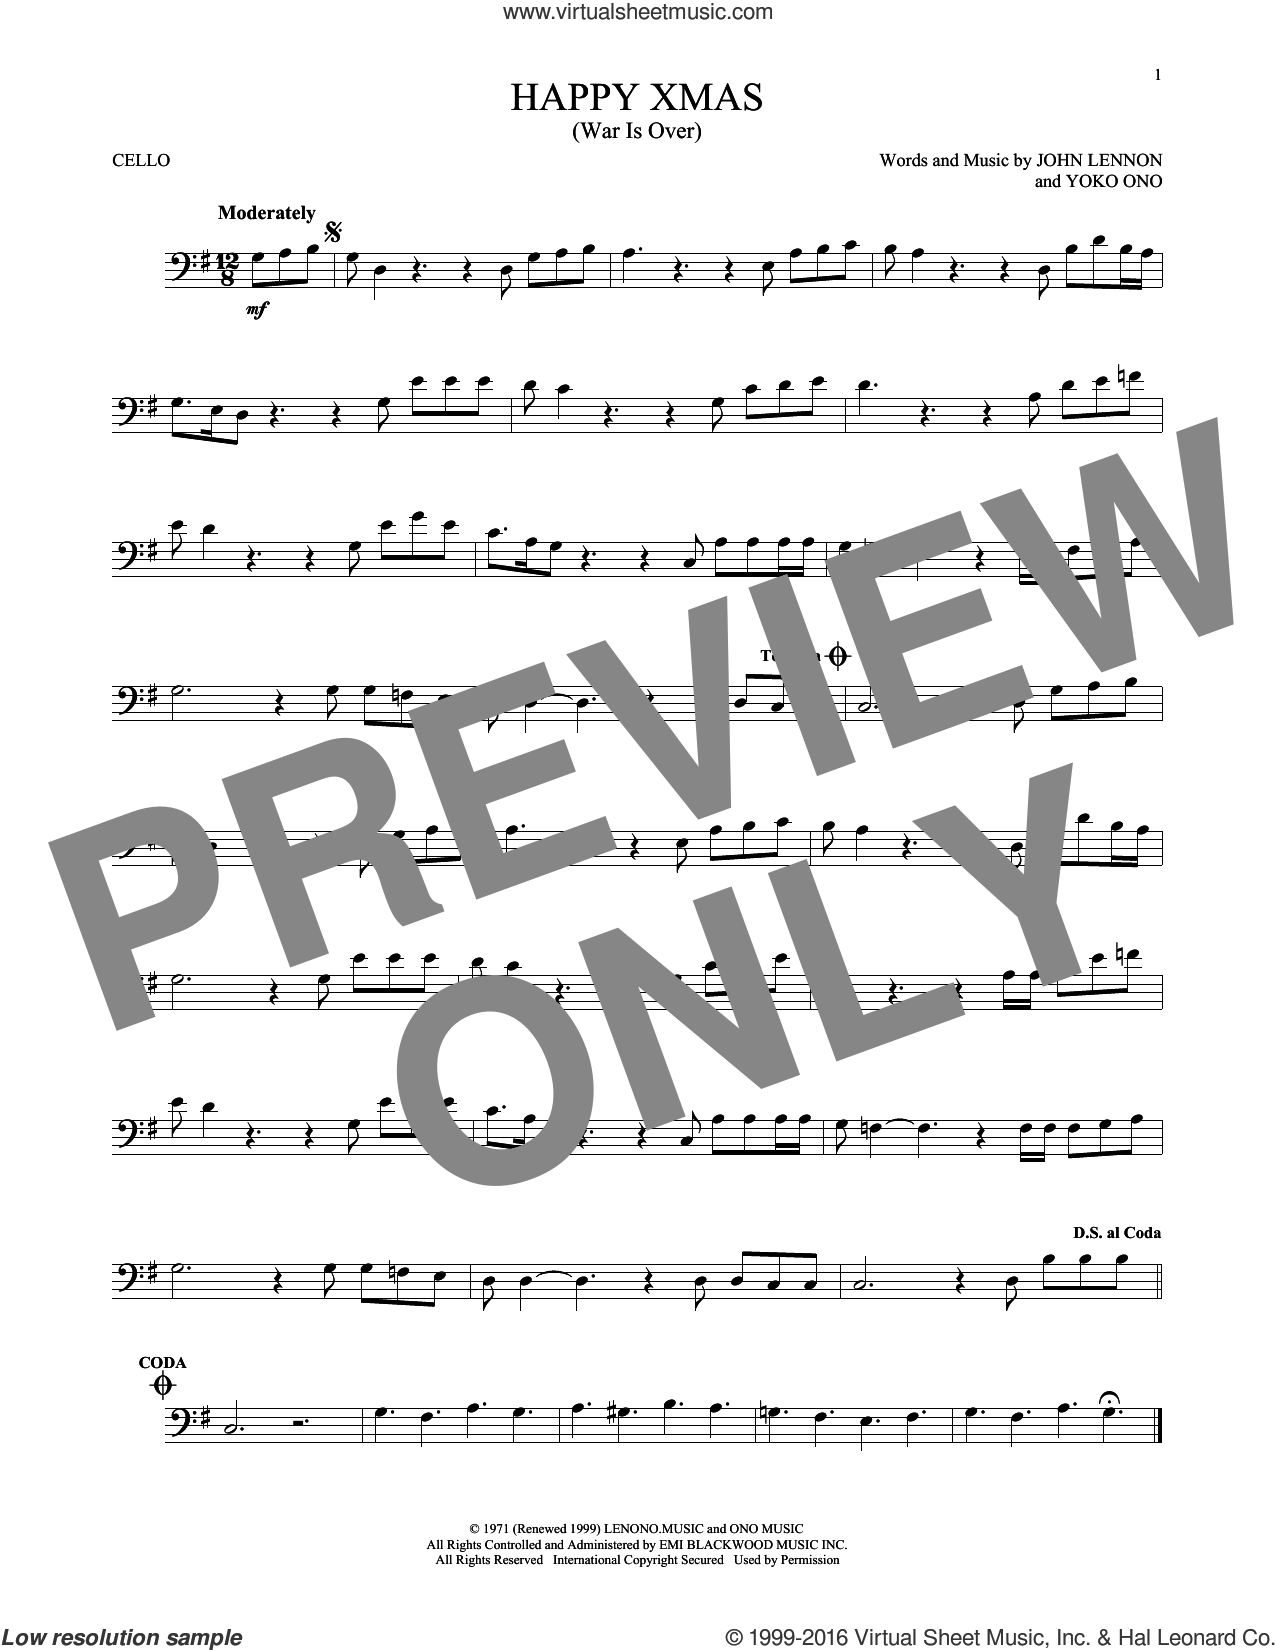 Happy Xmas (War Is Over) sheet music for cello solo by John Lennon and Yoko Ono, intermediate